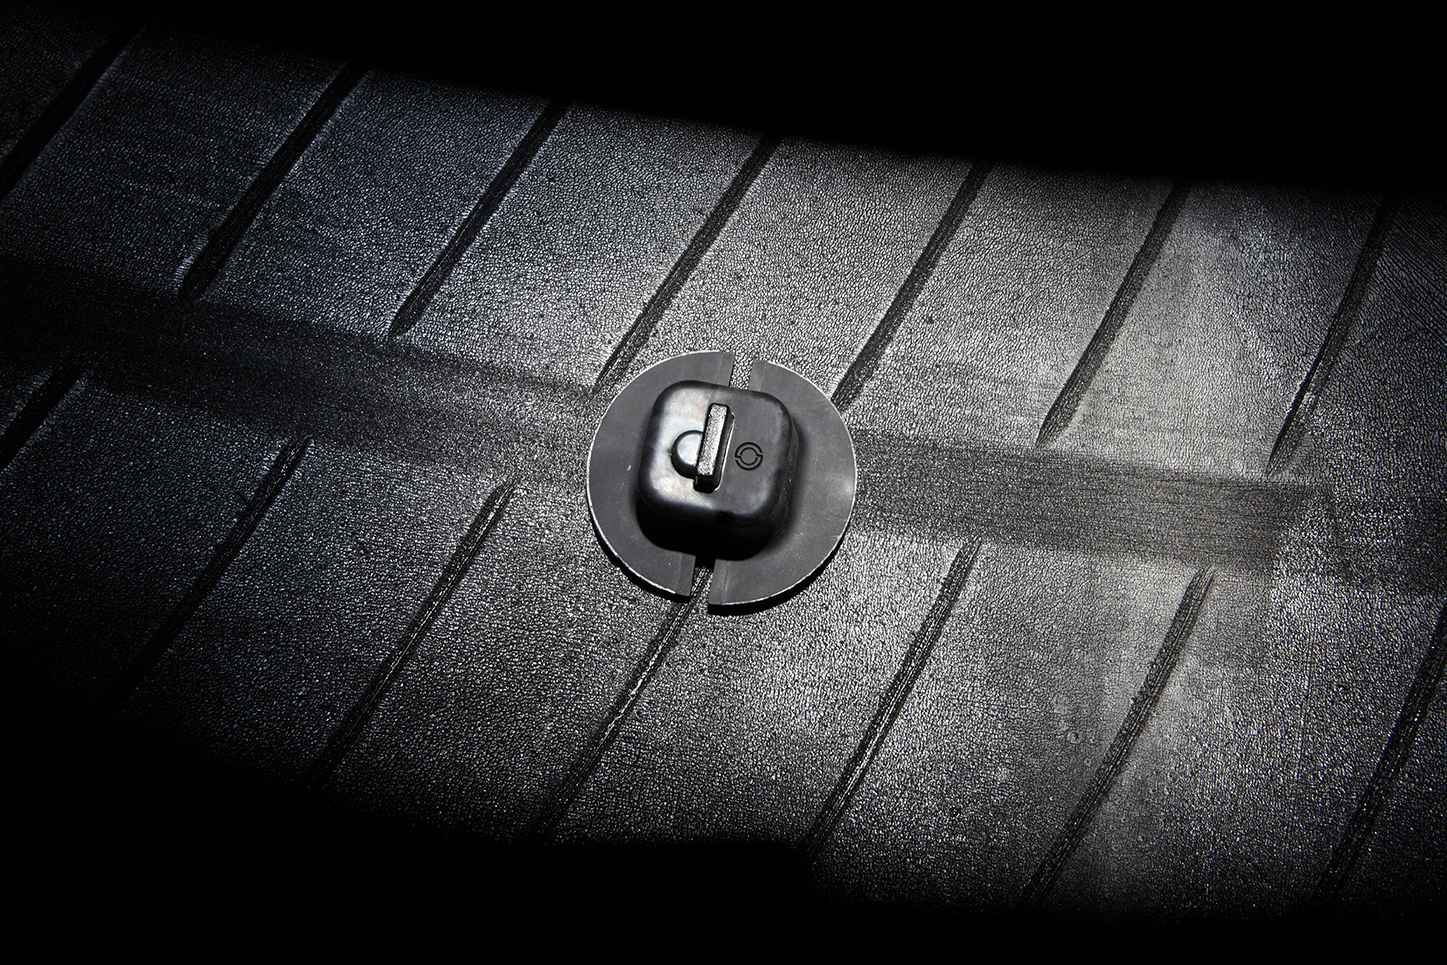 Tire details with the Aeolus Smart Fleet Solutions logo